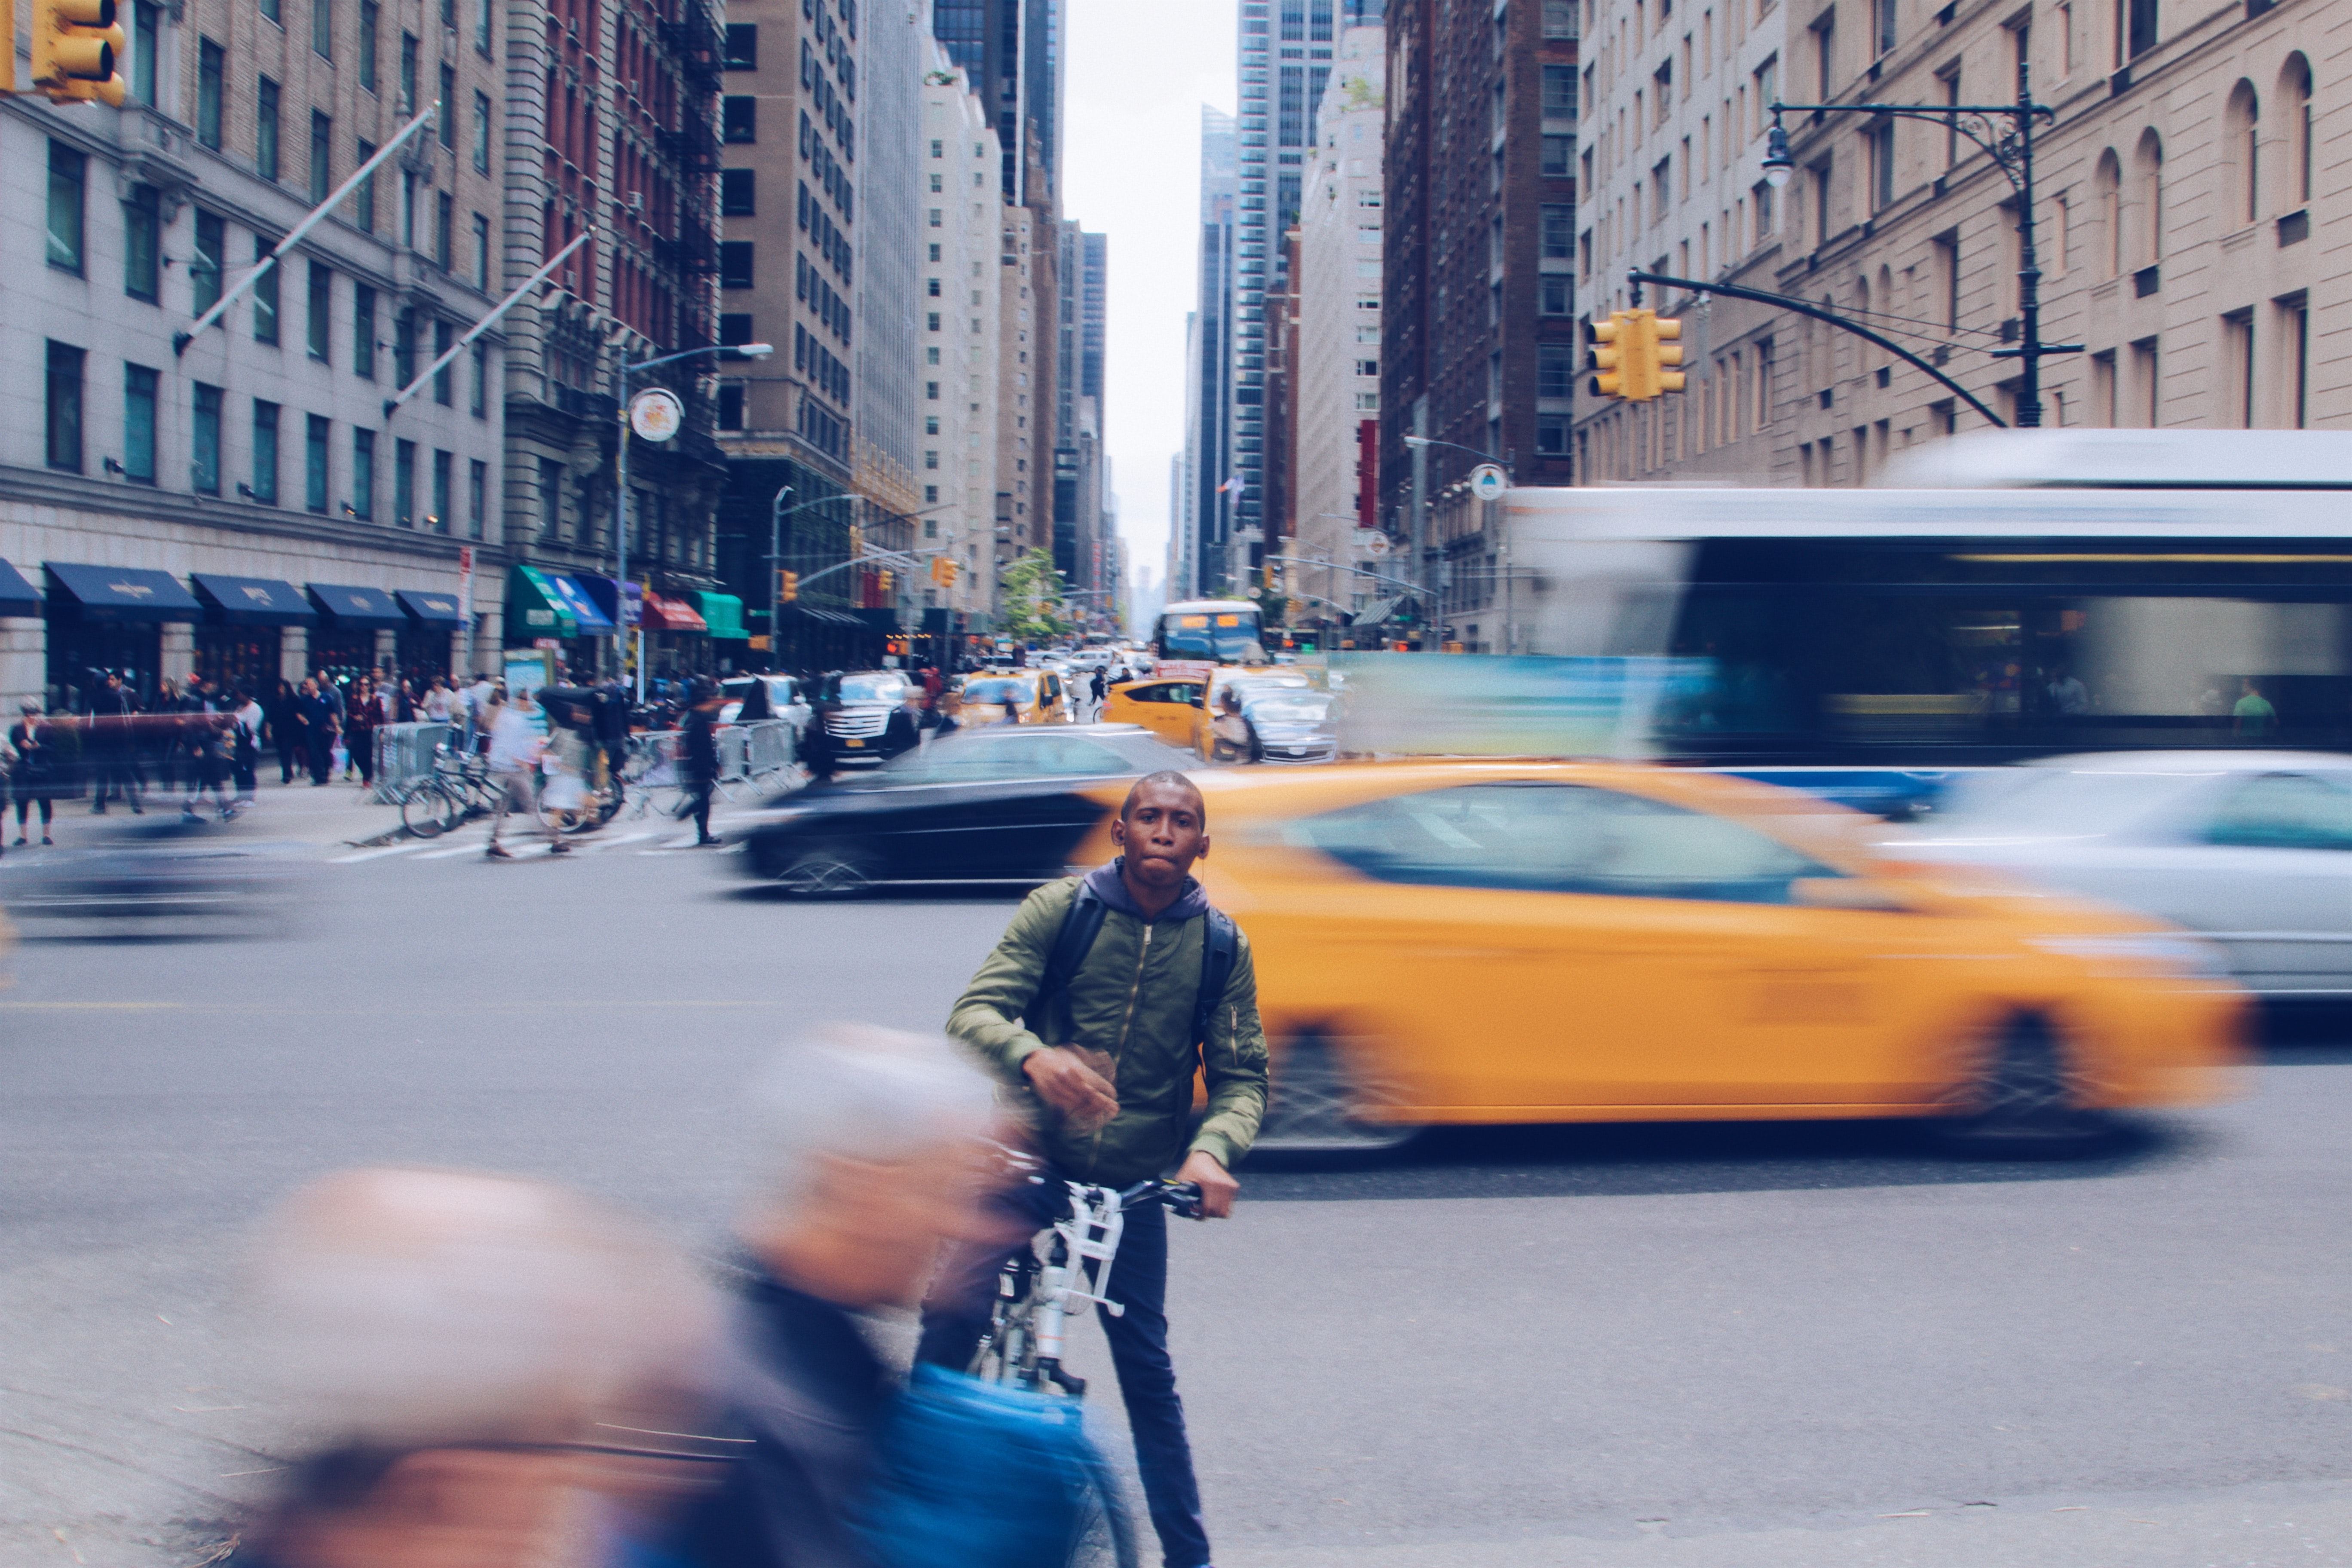 A man on a bicycle stopping near the sidewalk in a busy New York street